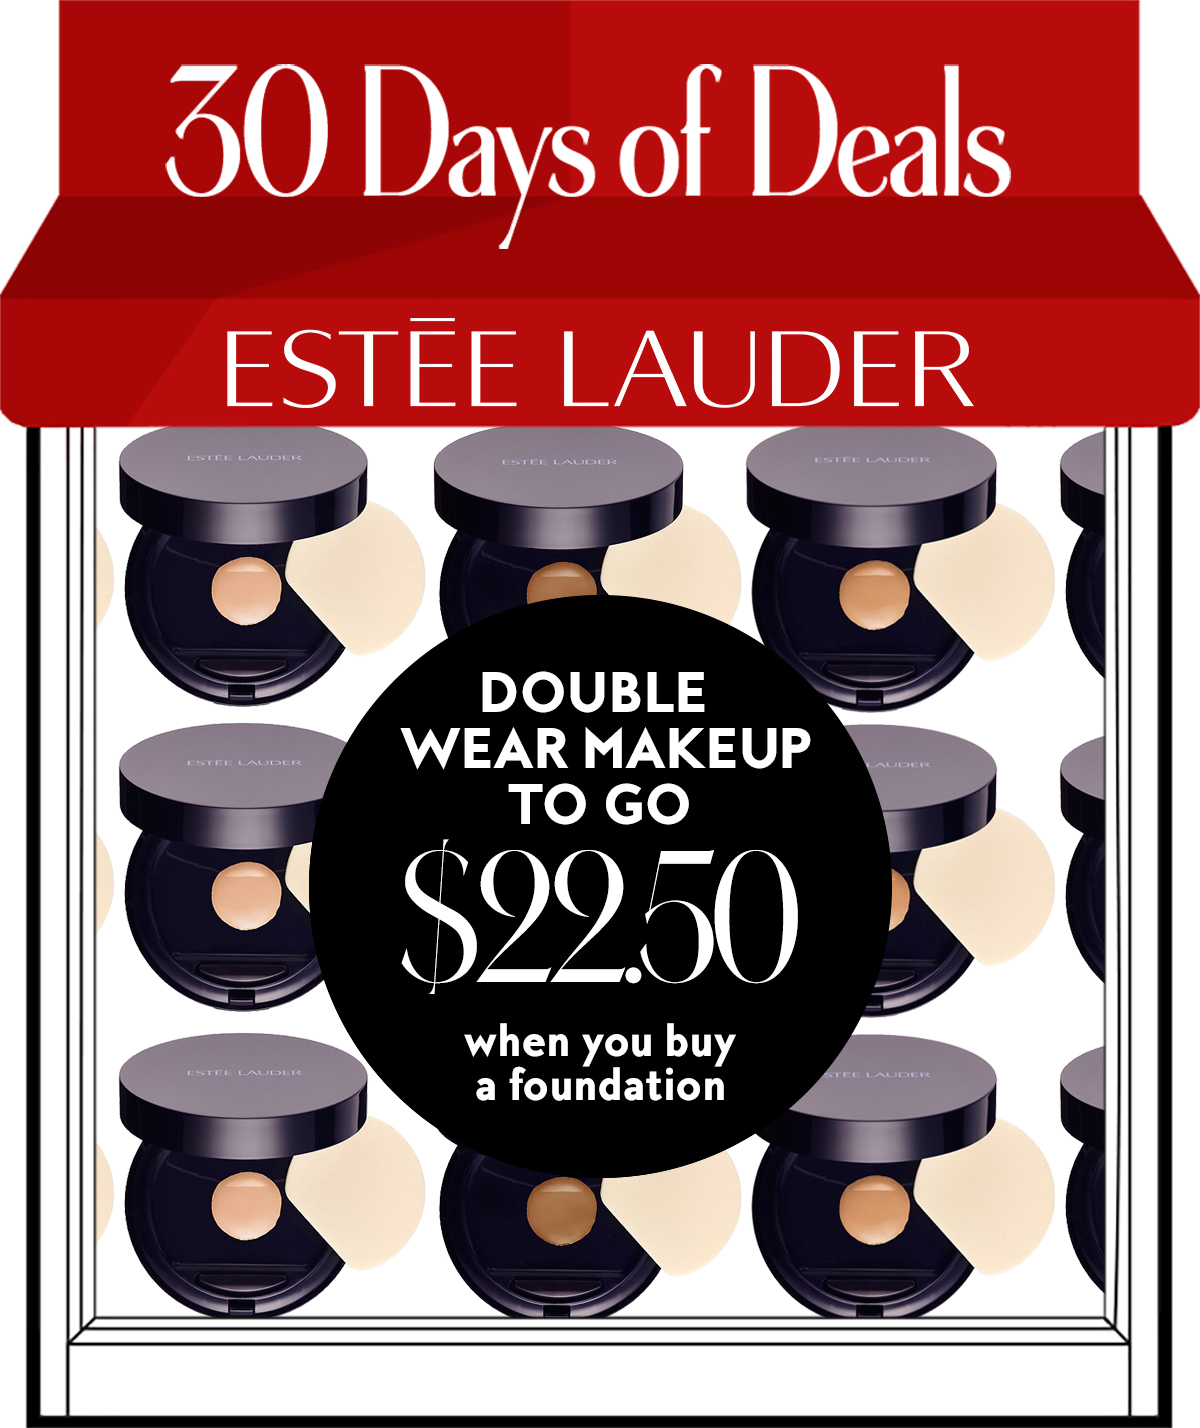 30 Days of Deals - Estee Lauder - LEAD